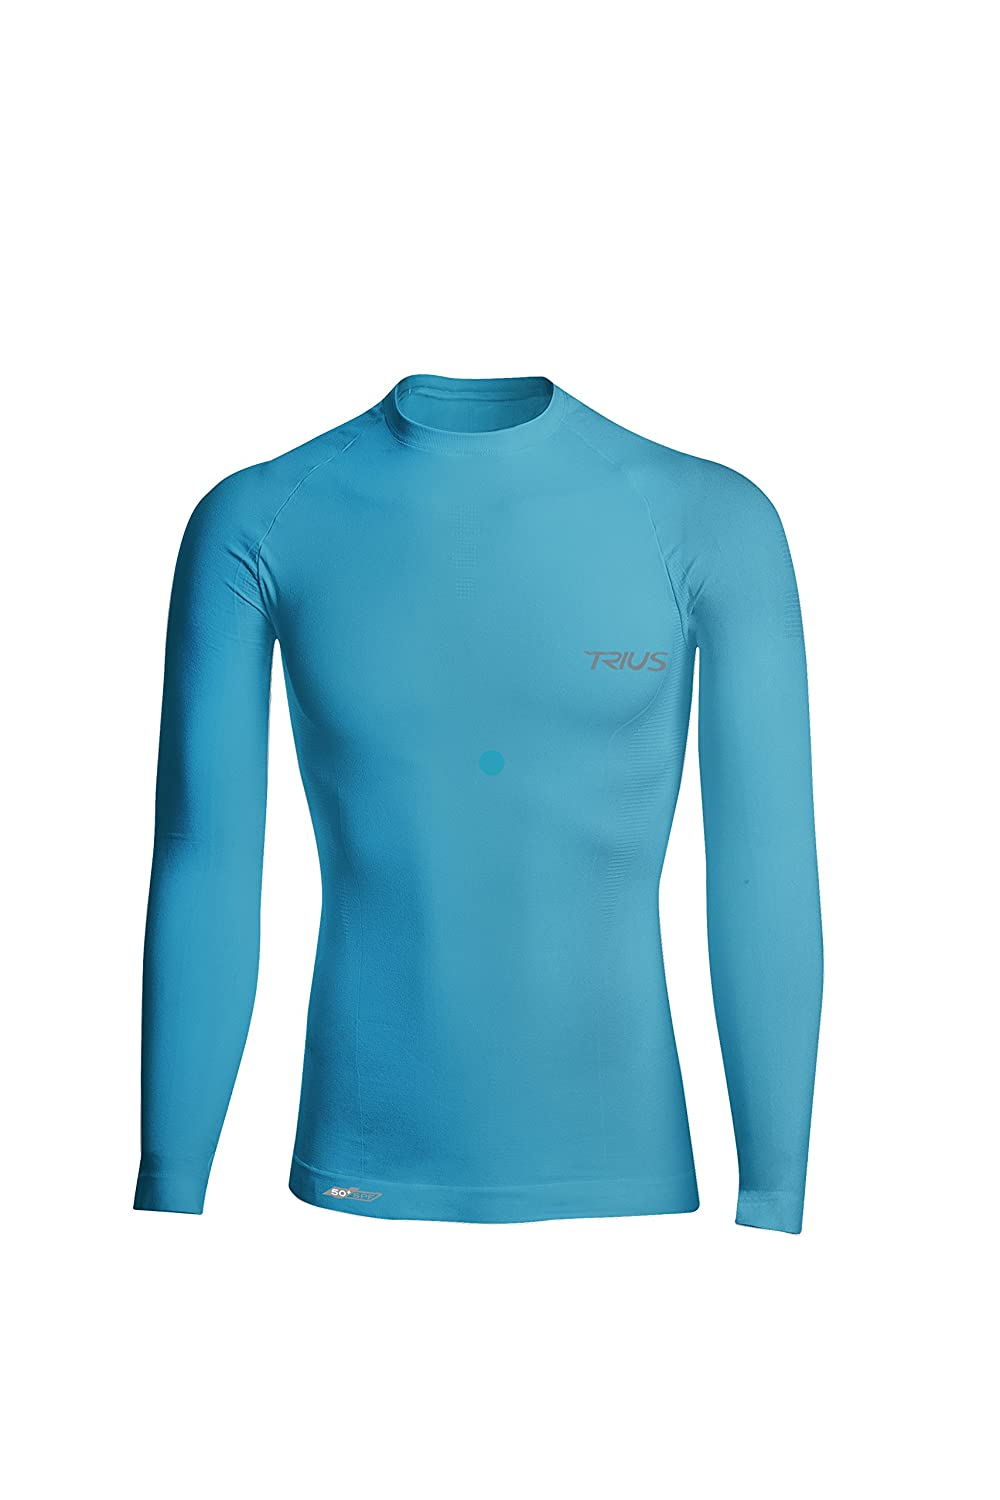 e8e568f2fa6 SPEED UP MUSCLE RECOVERY. This long sleeve compression shirt helps to  improve circulation and reduces recovery time. The perfect mens  base later  shirt.